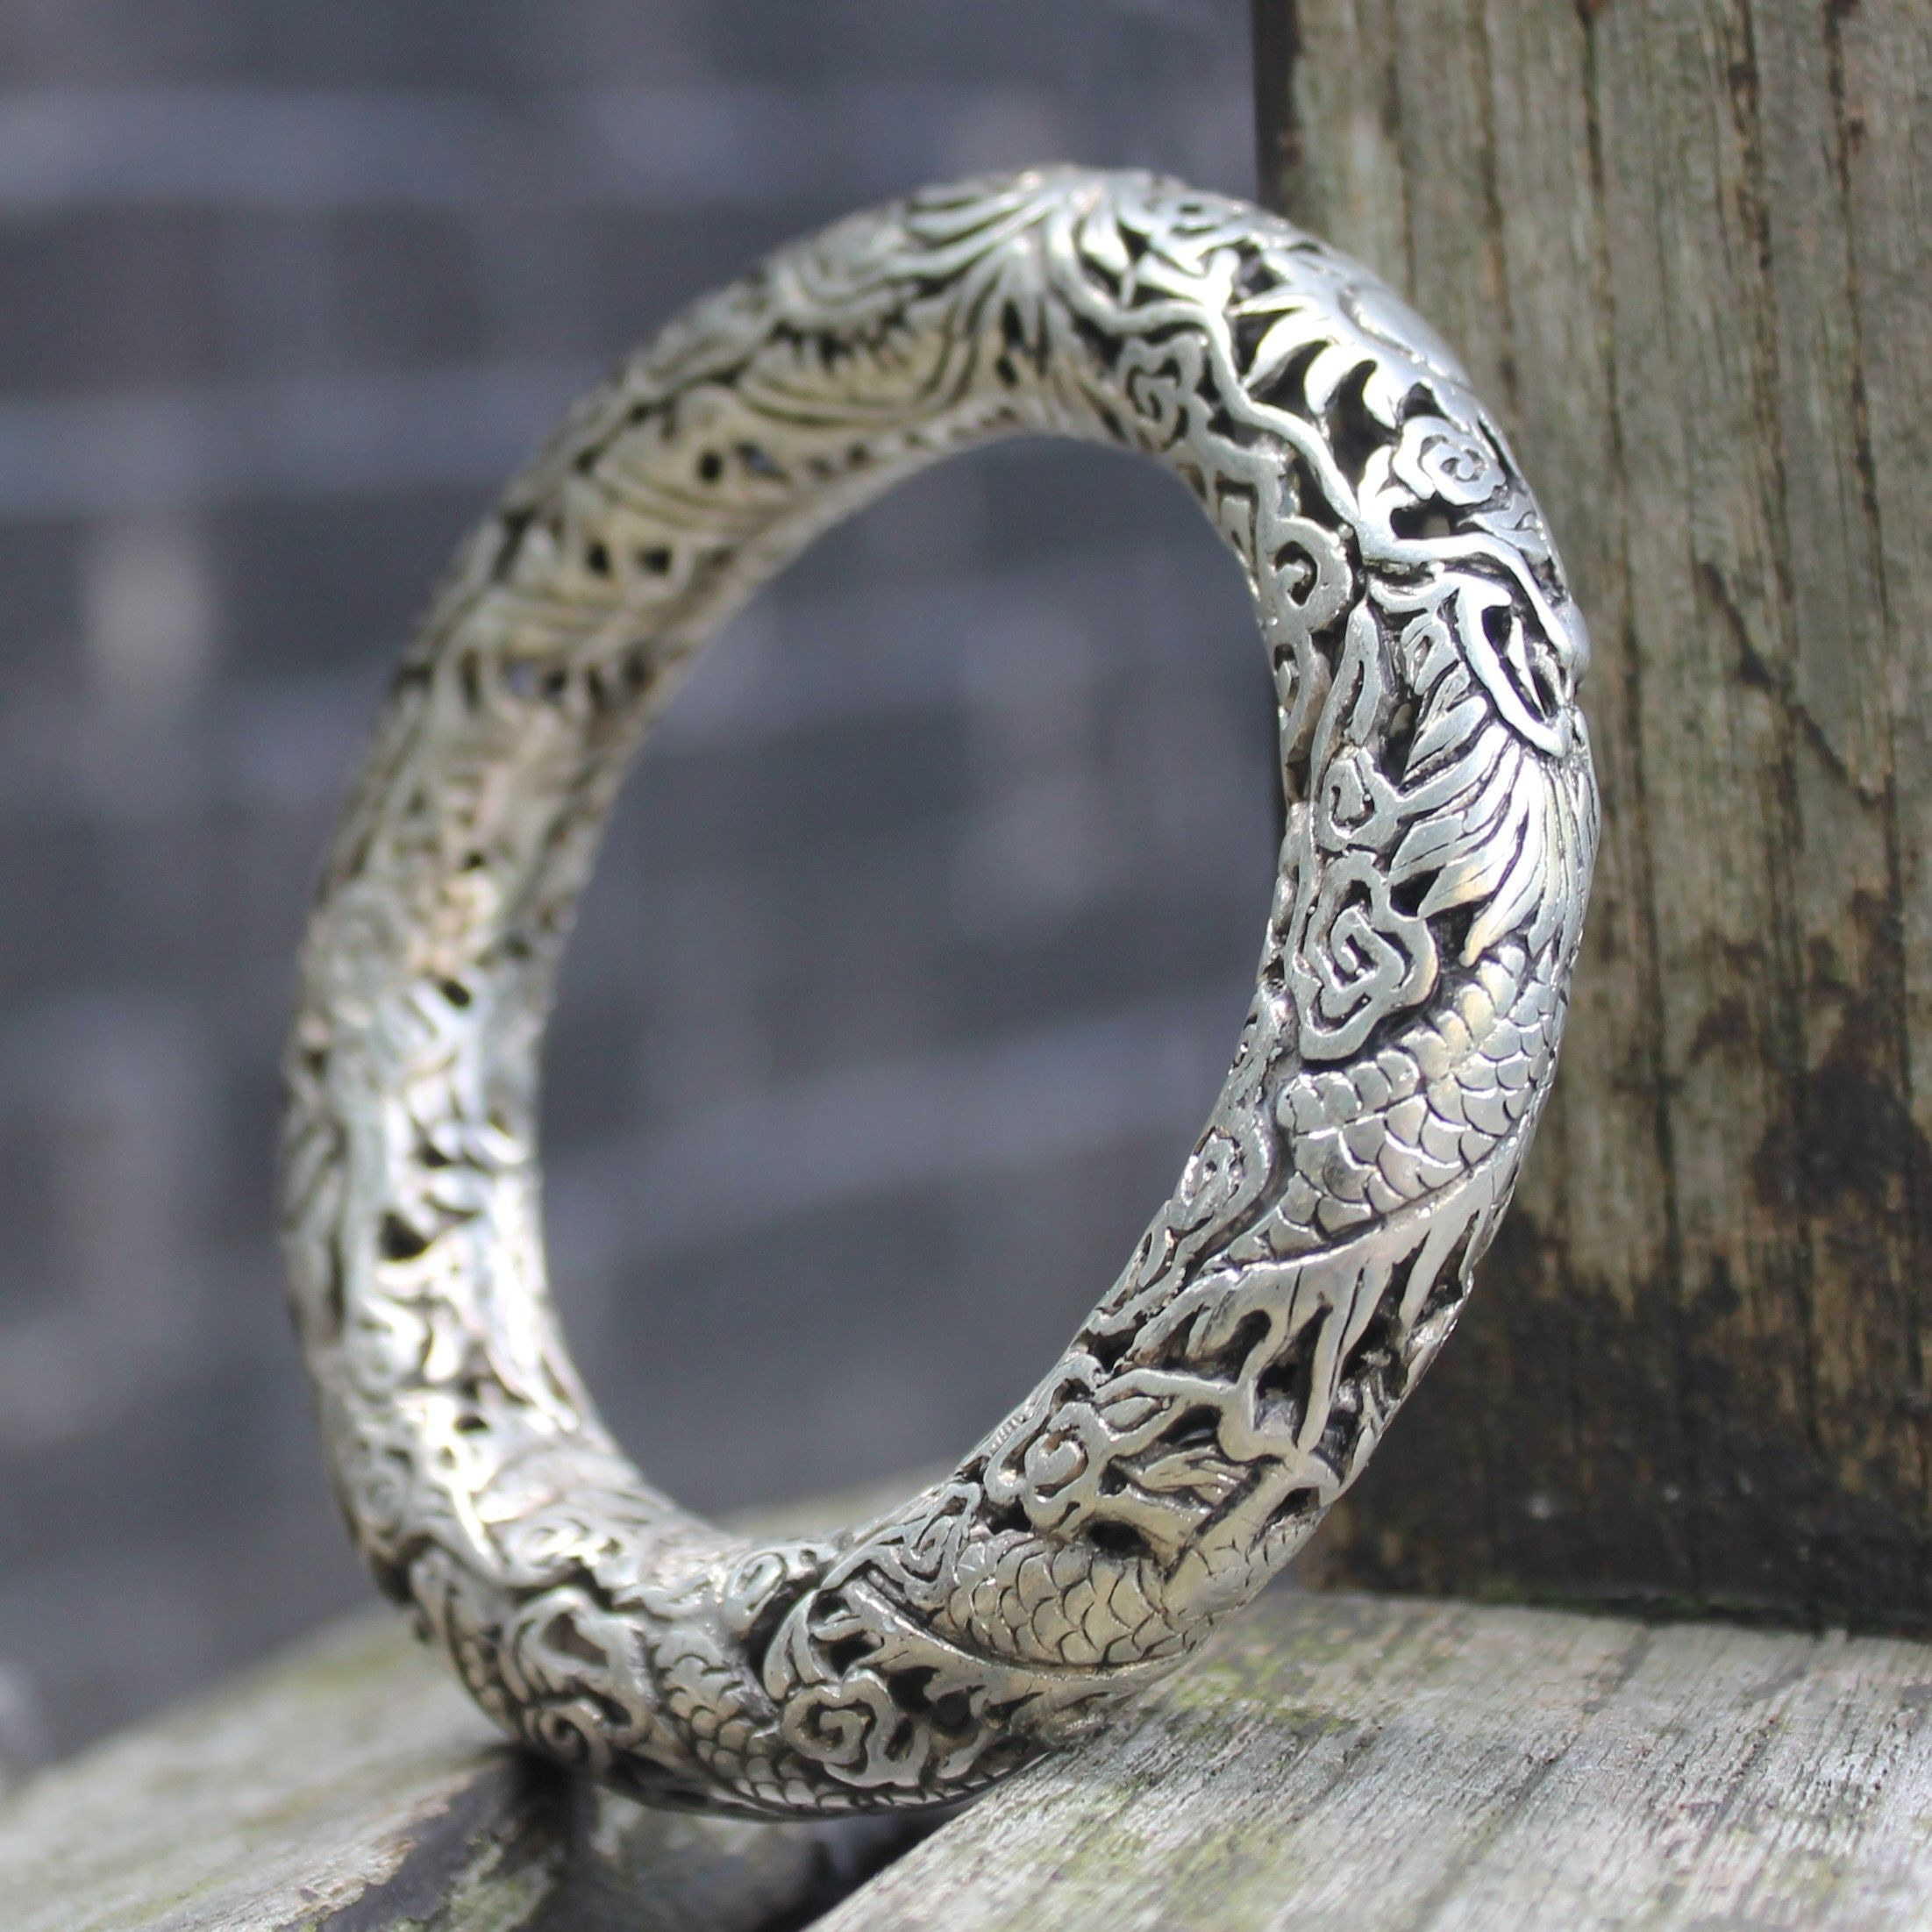 A-pair-Chinese-Miao-silver-dragon-cuff-Bangle-bracelet